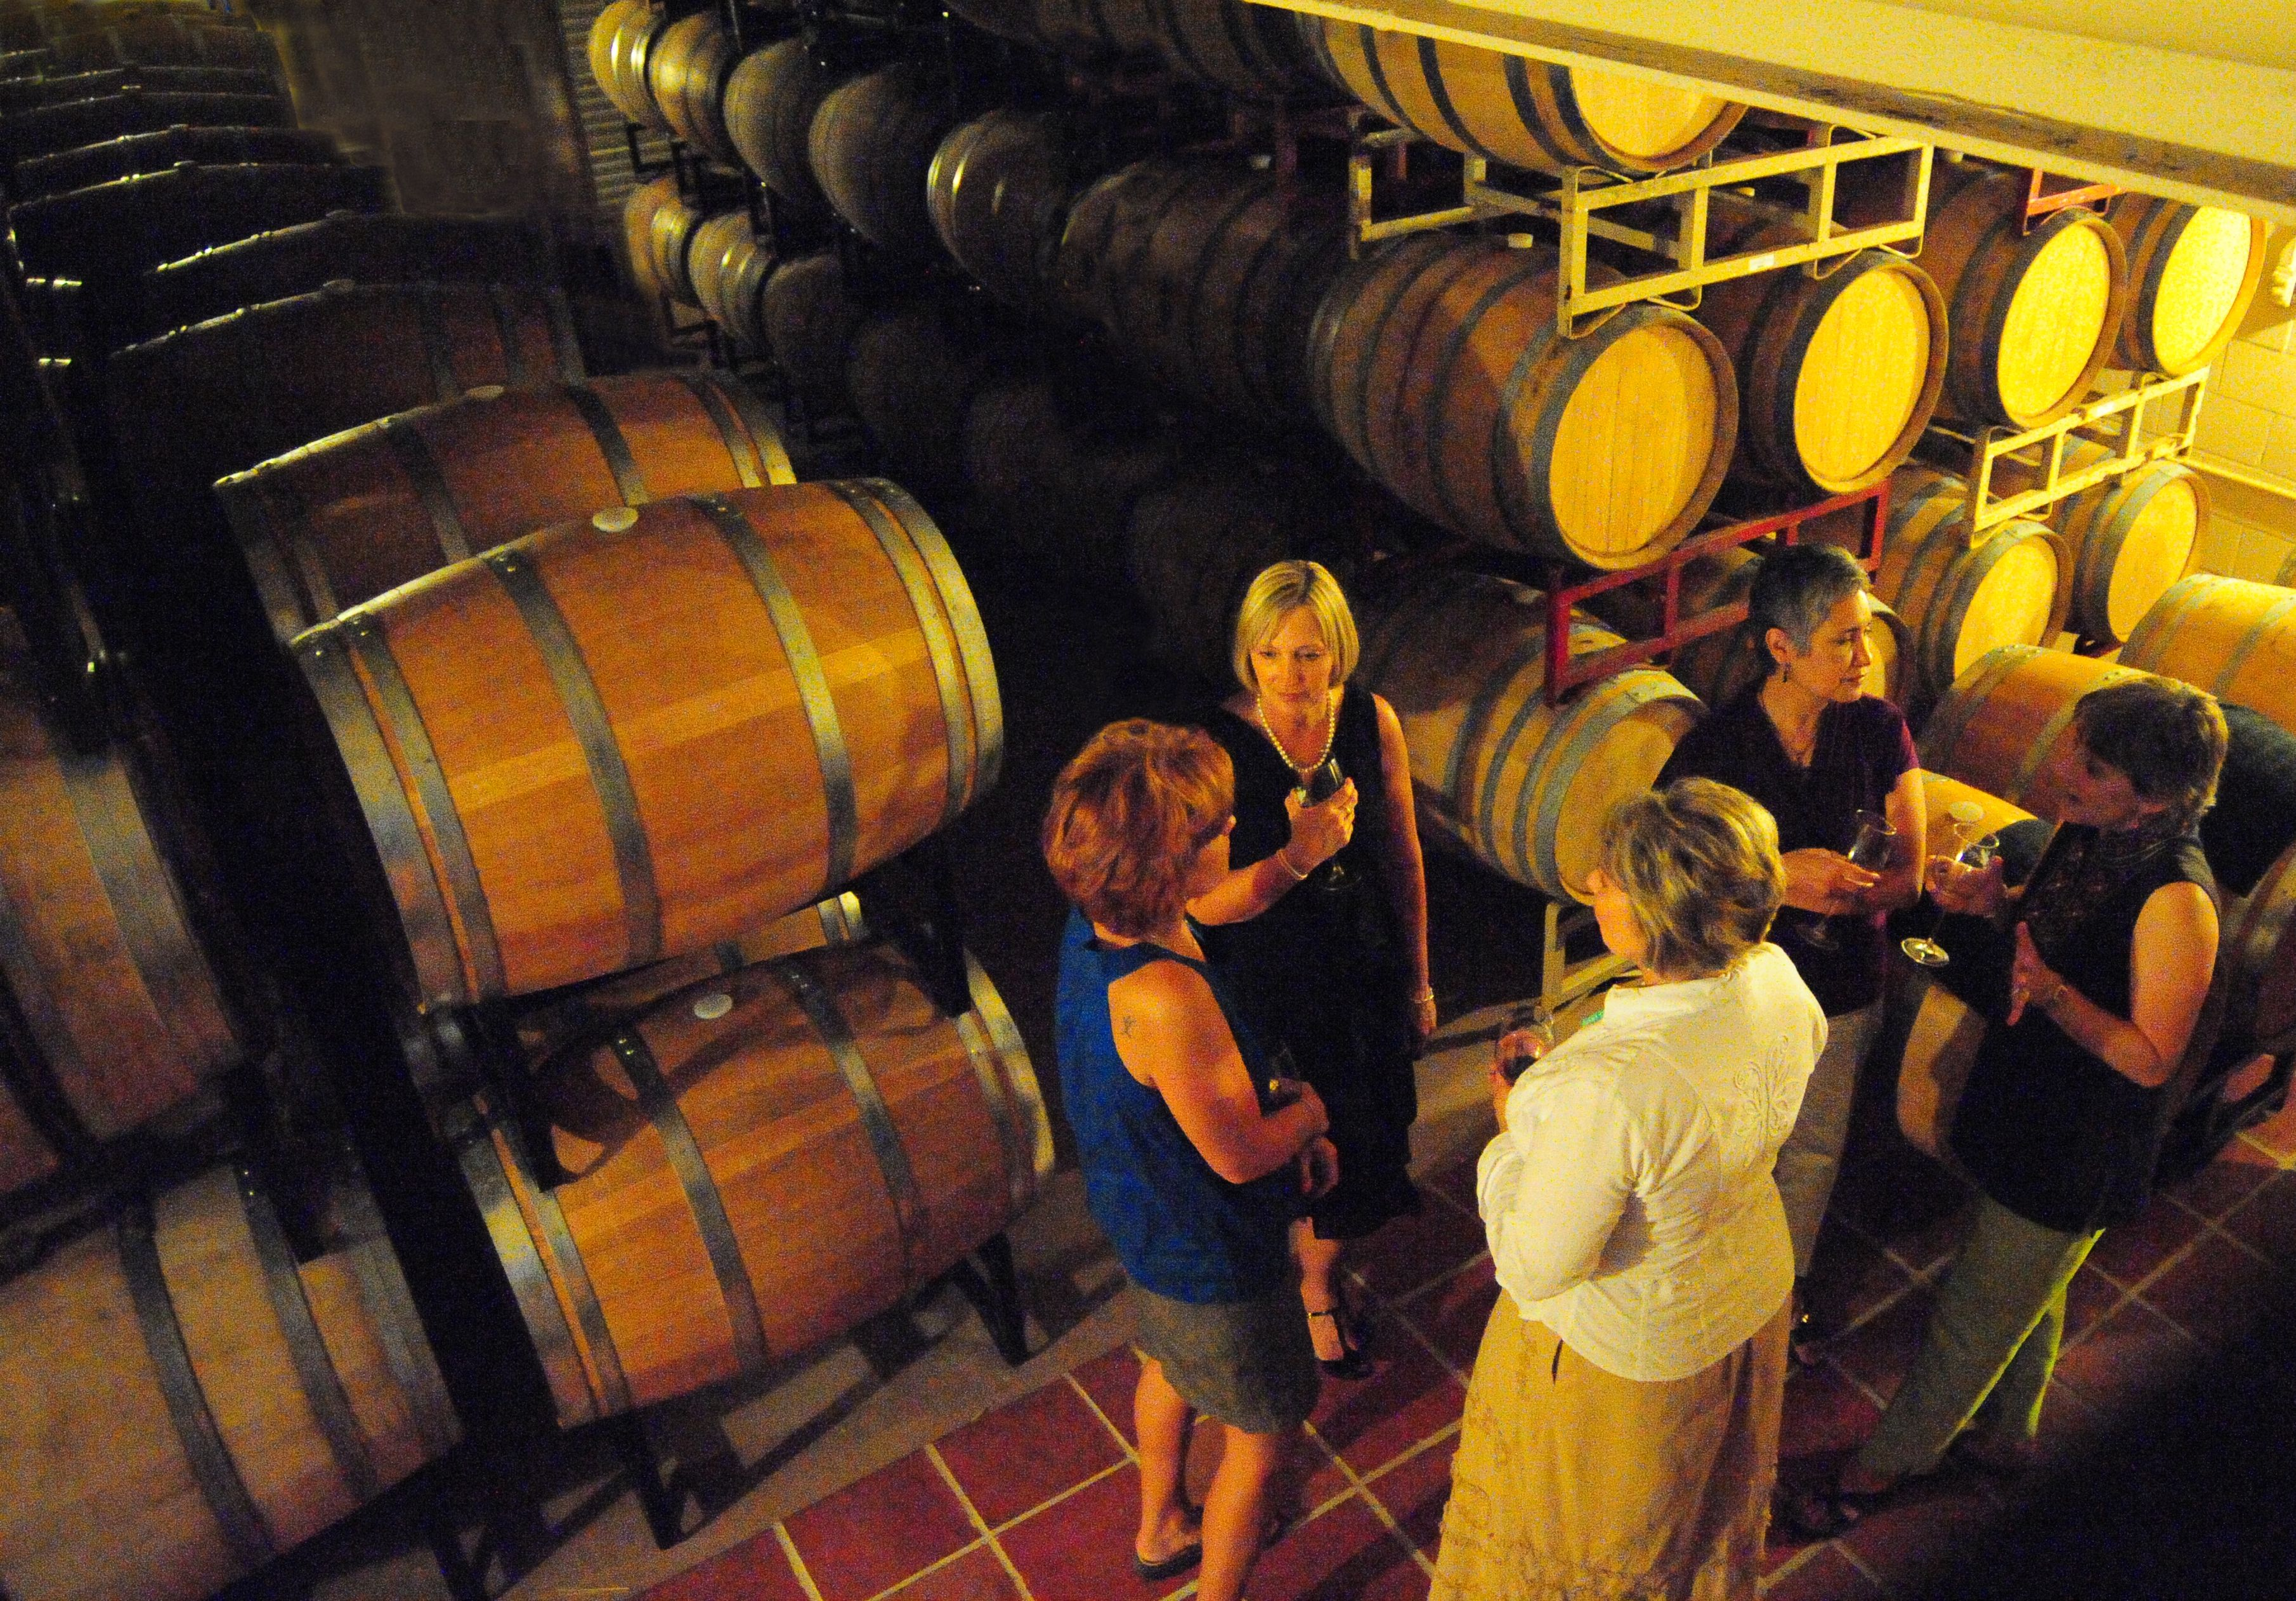 New tour beganMarch 3rd includes wine tasting in the wine cellar - call Texas Wine Tours for more information or visit our website http://www.texas-wine-tours.com/Default.htm